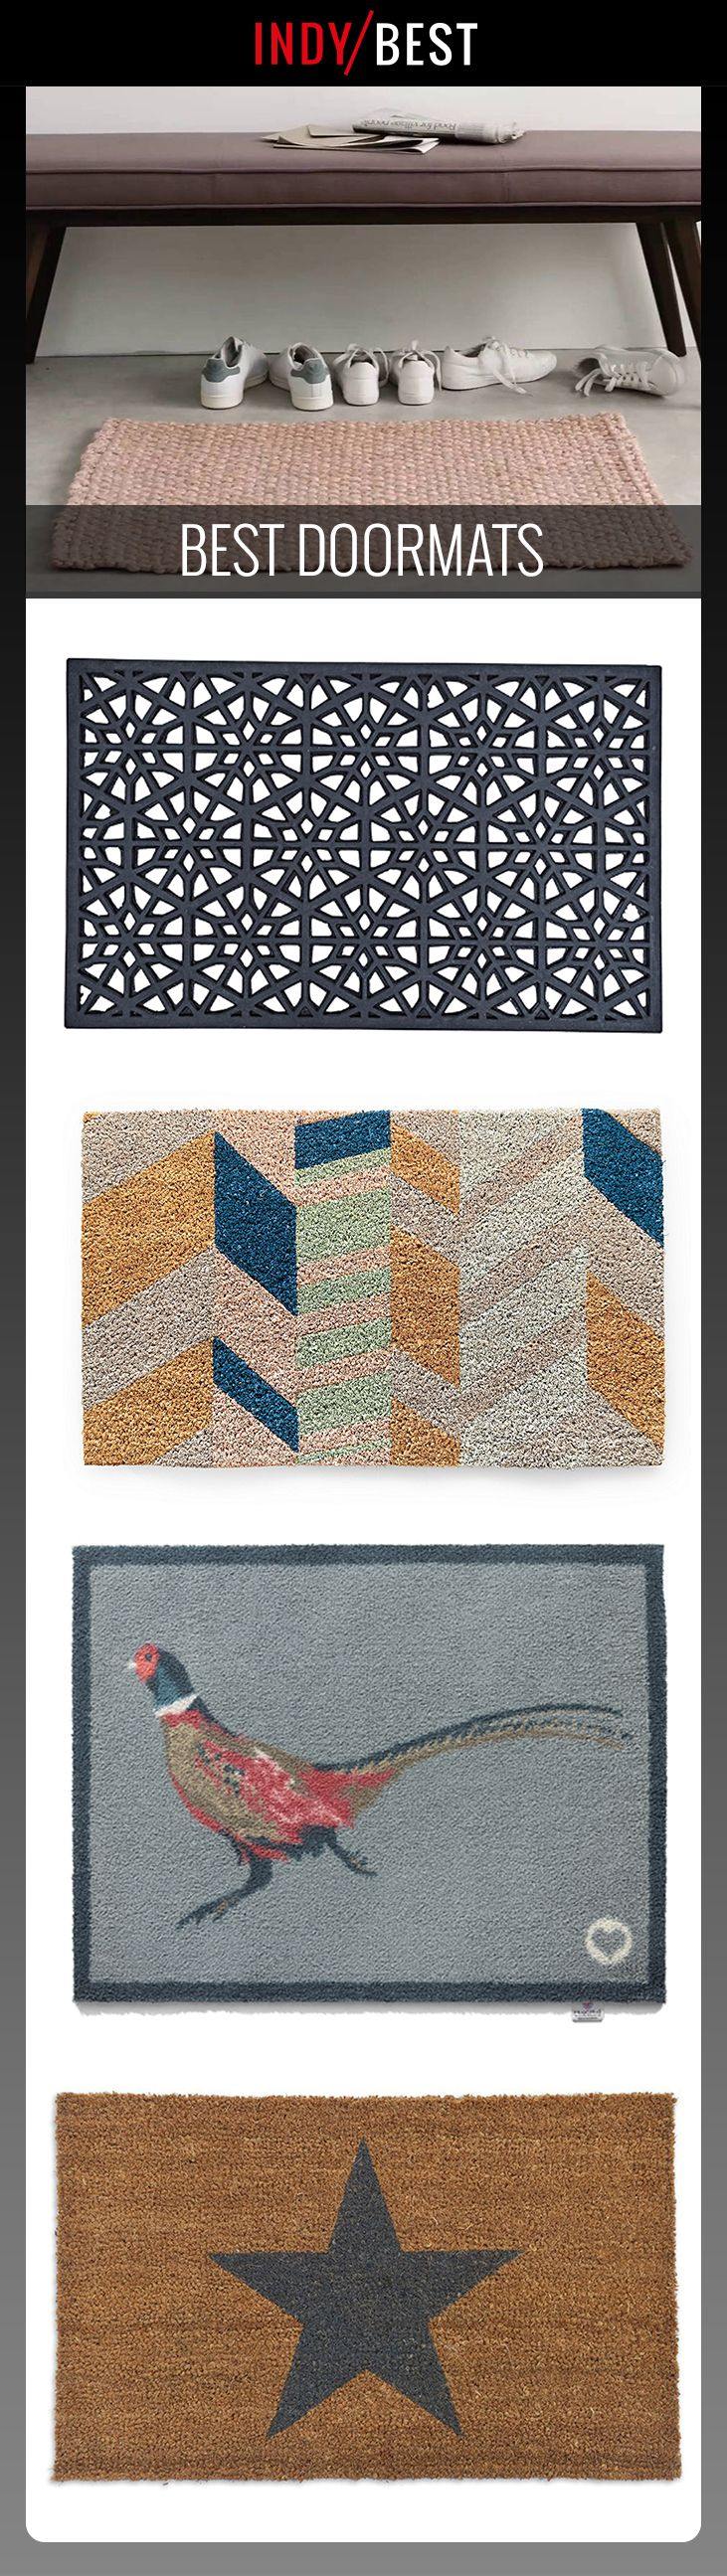 Keep the hallway free from dirt with a hard-wearing doormat: https://ind.pn/2jNXGja